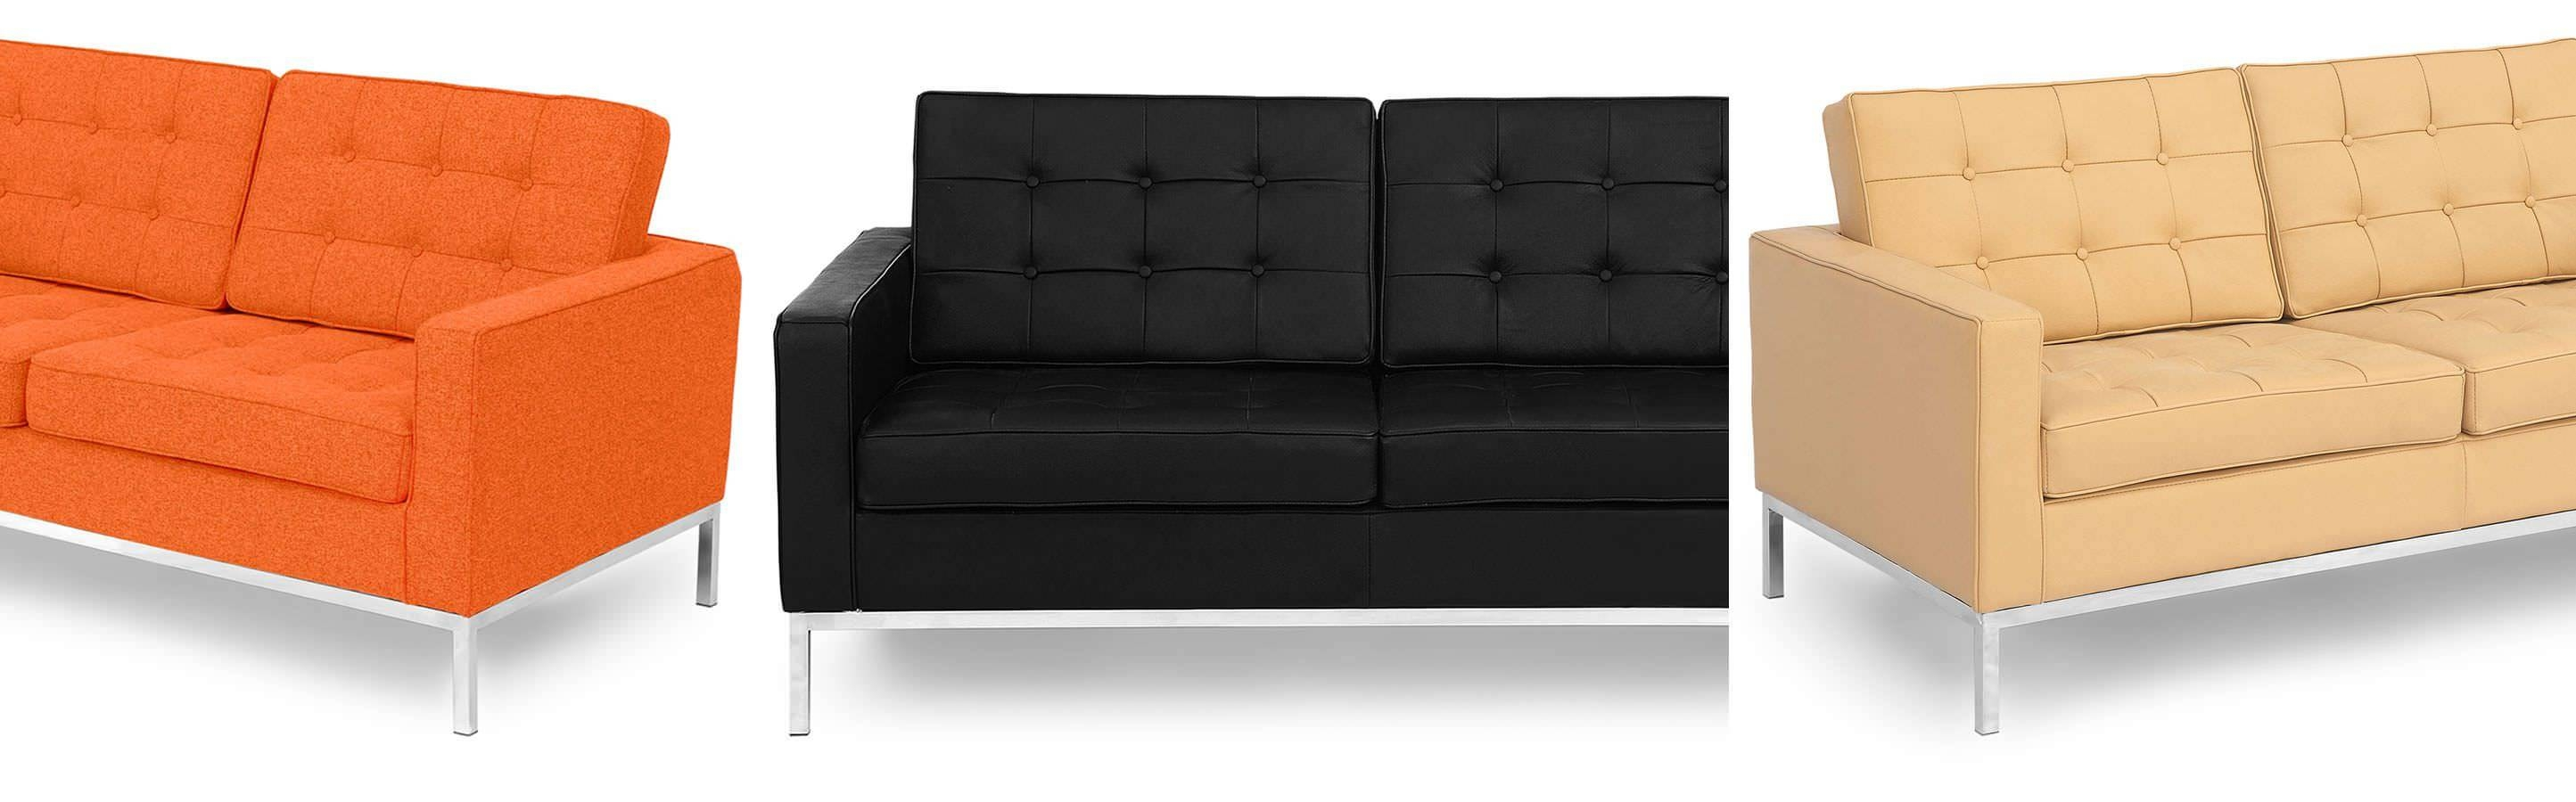 Florence Knoll Style Loveseat 2 Seater Small Sofa Mid Century Modern intended for Florence Sofas And Loveseats (Image 10 of 25)